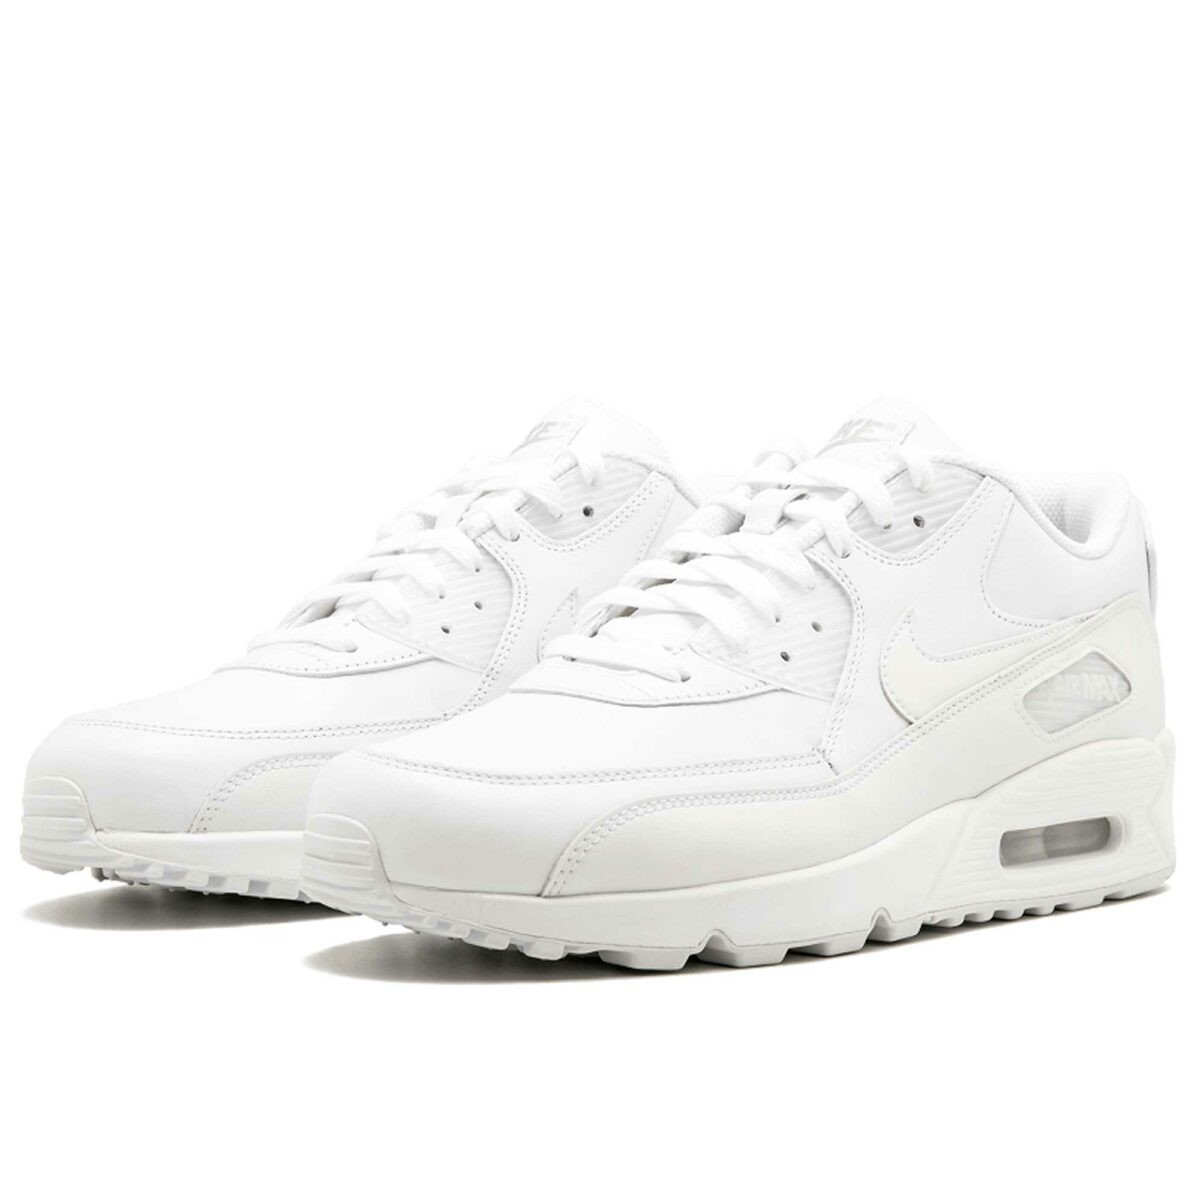 nike air max 90 LTR all white 302519-113 купить